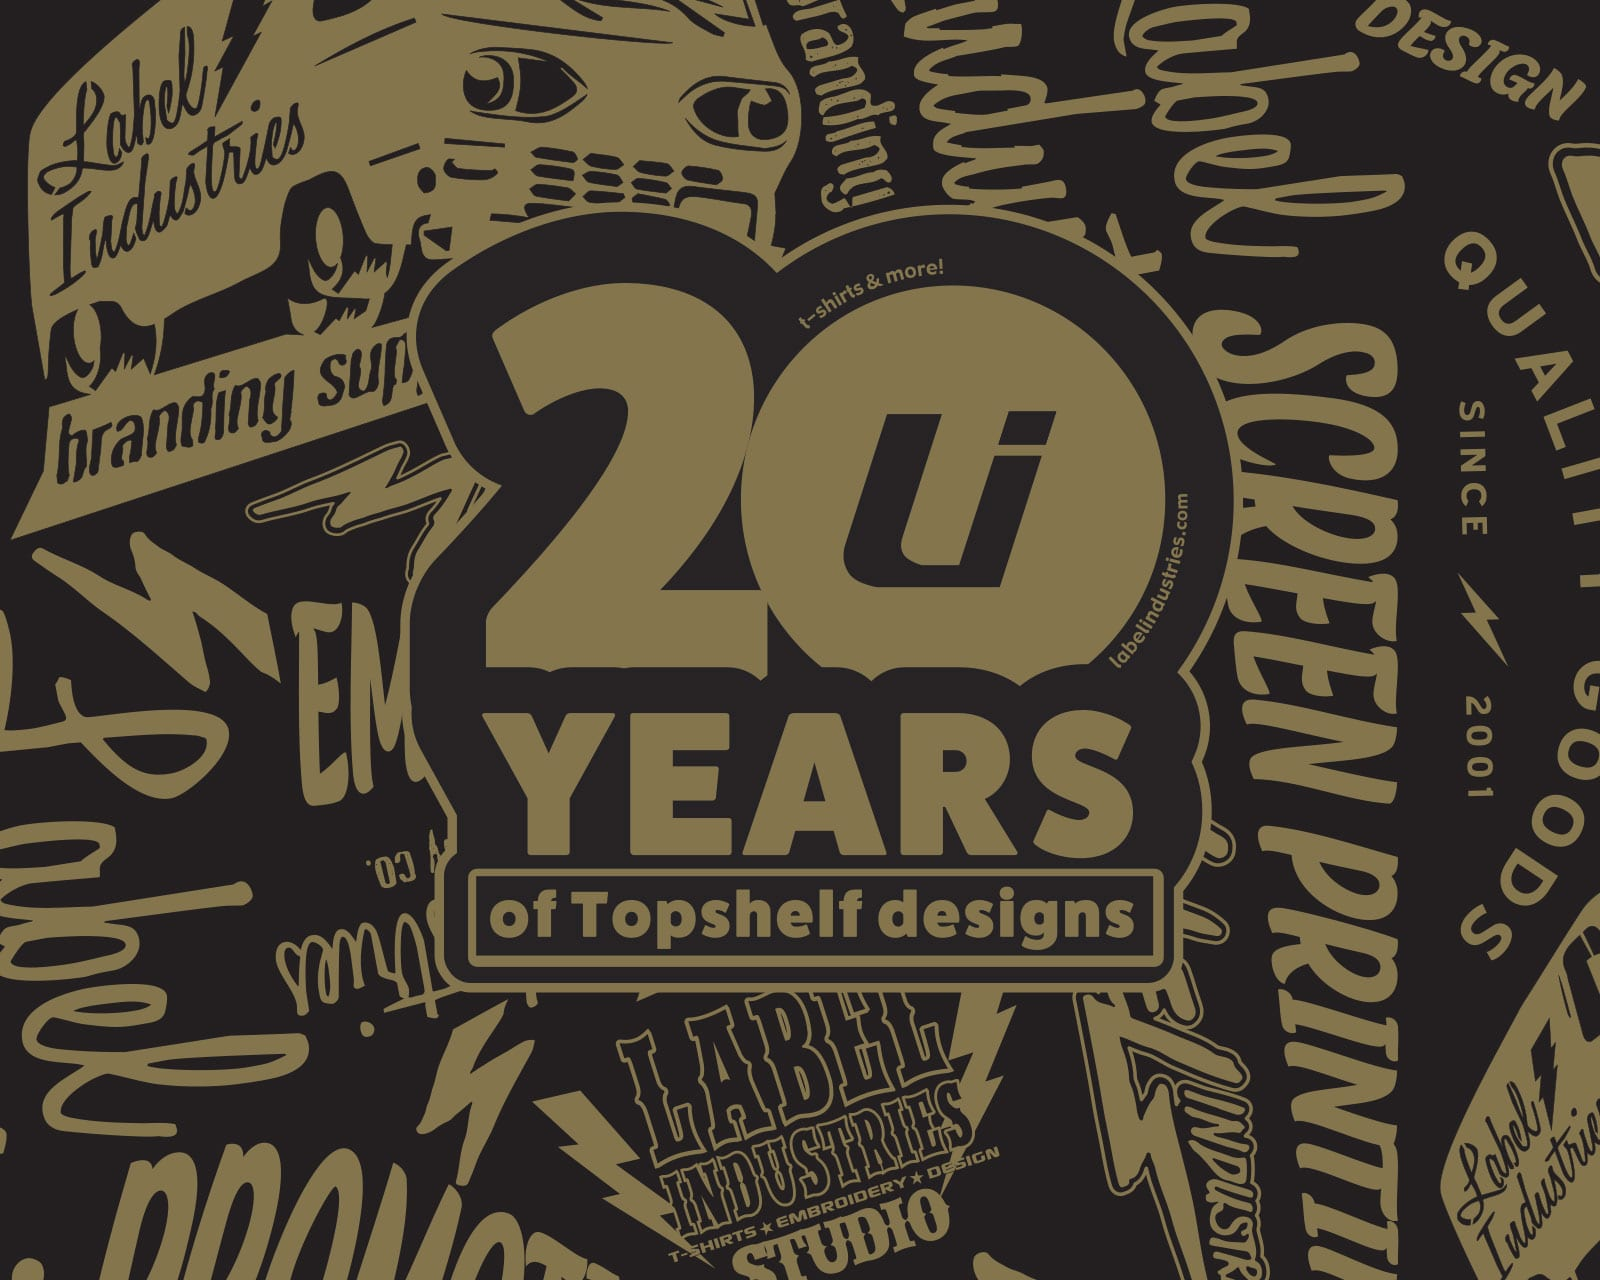 Label Industries 20 Years